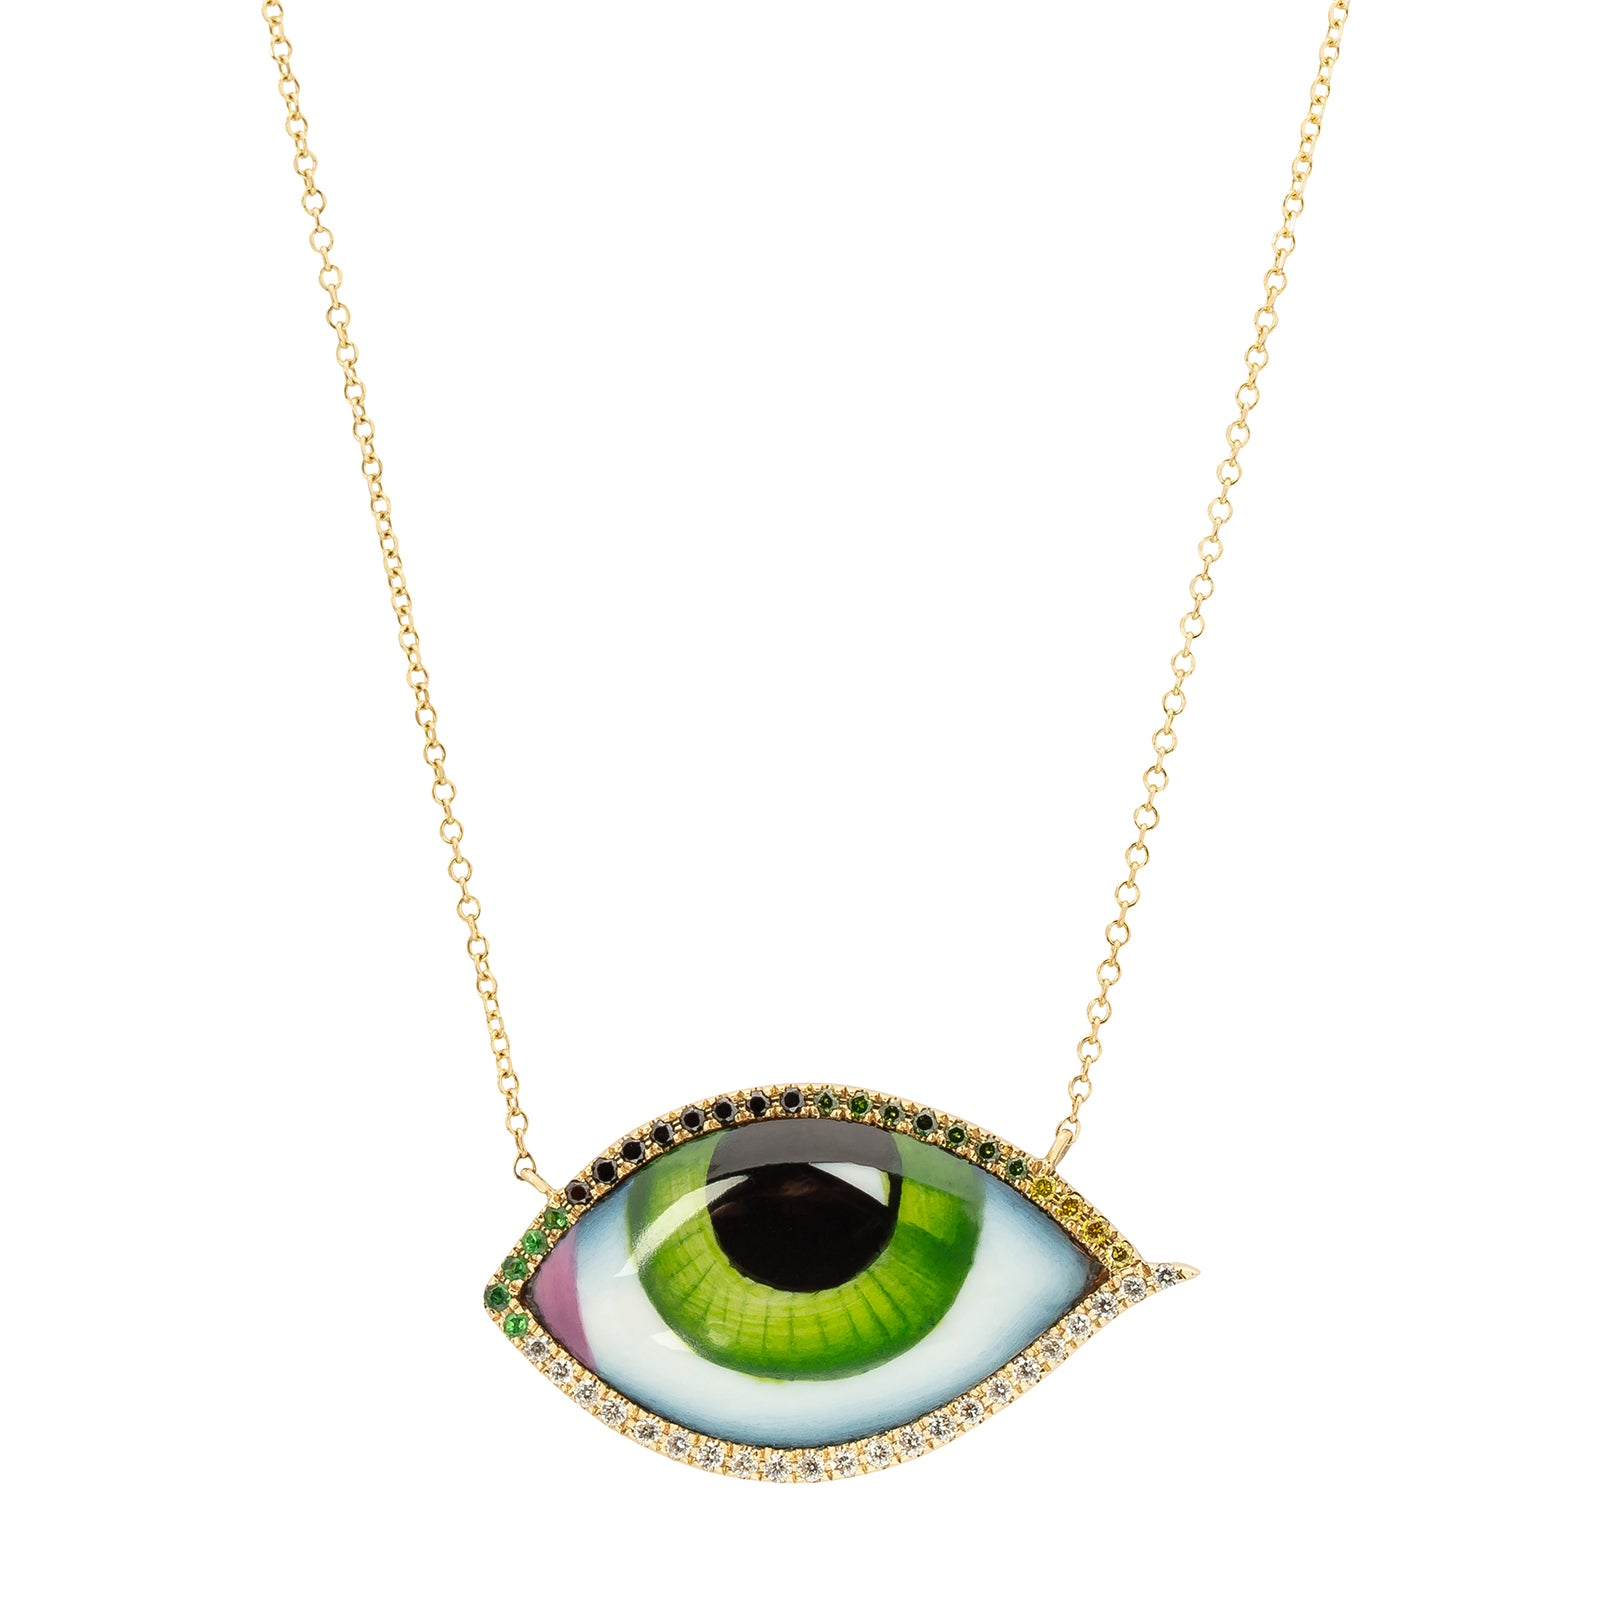 Lito Fine Jewelry Multi-Stone Green Eye Necklace - Necklaces - Broken English Jewelry